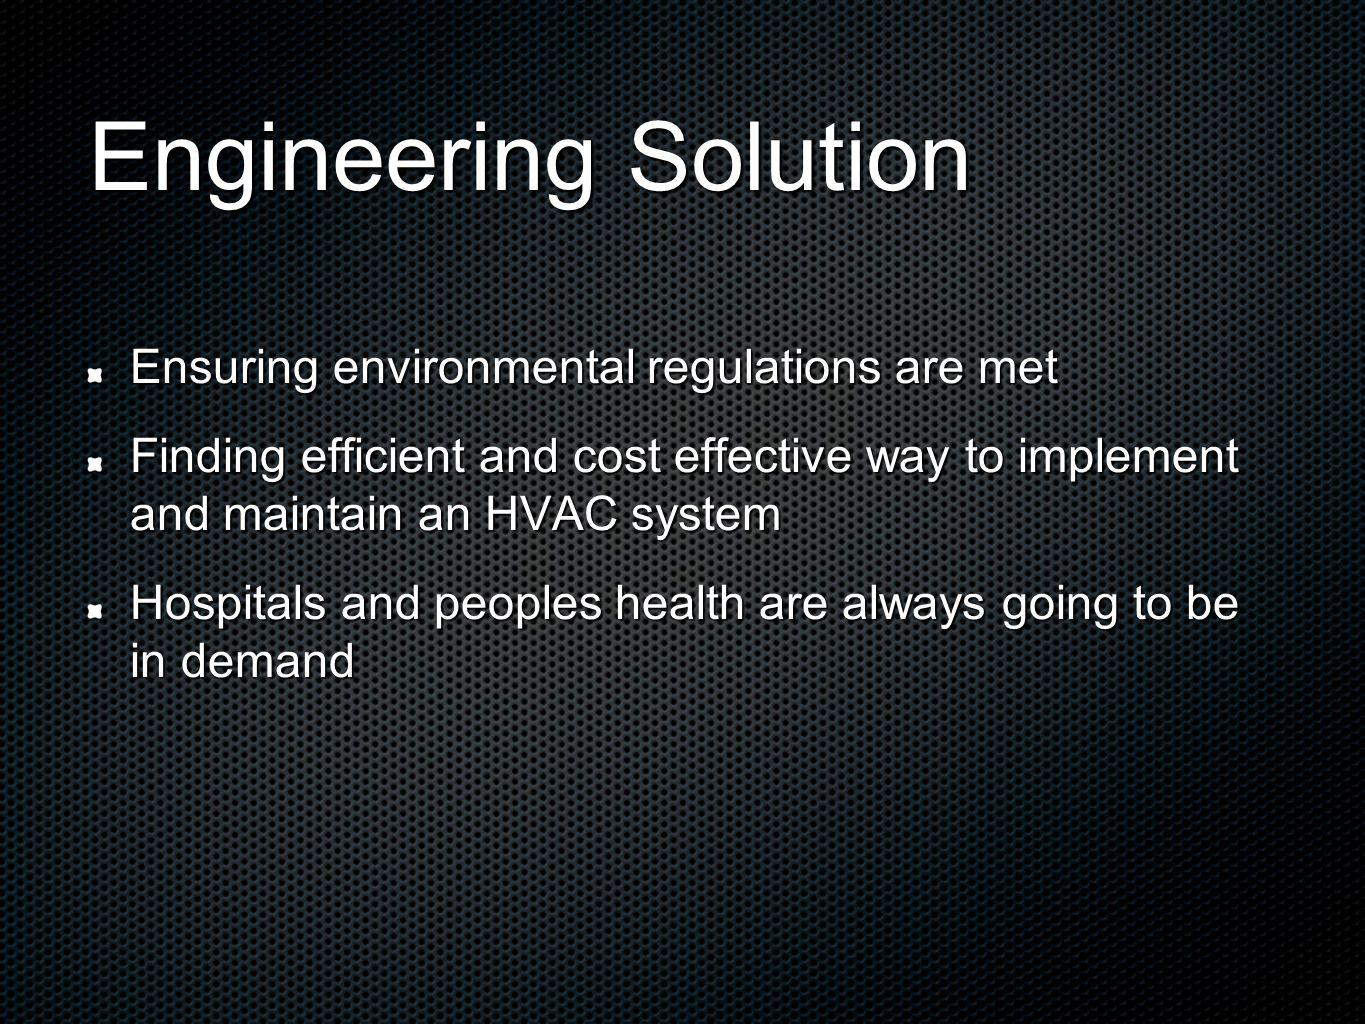 Schedule DatesGoals January Proposal/Trace 700 Calculations February 1 - 7 ASHRAE Ventilation Requirements February 8 - 14 Starting Ventilation Design February 15 - 21 Completing Ventilation Design February 22 - 28 Starting Heating Design March 1 - 7 Completing Heating Design March 8 - 14 Starting Cooling Design March 15 - 21 Completing Cooling Design March 22 - 28 Drafting/Report Writing March 29 - April 5 Completion